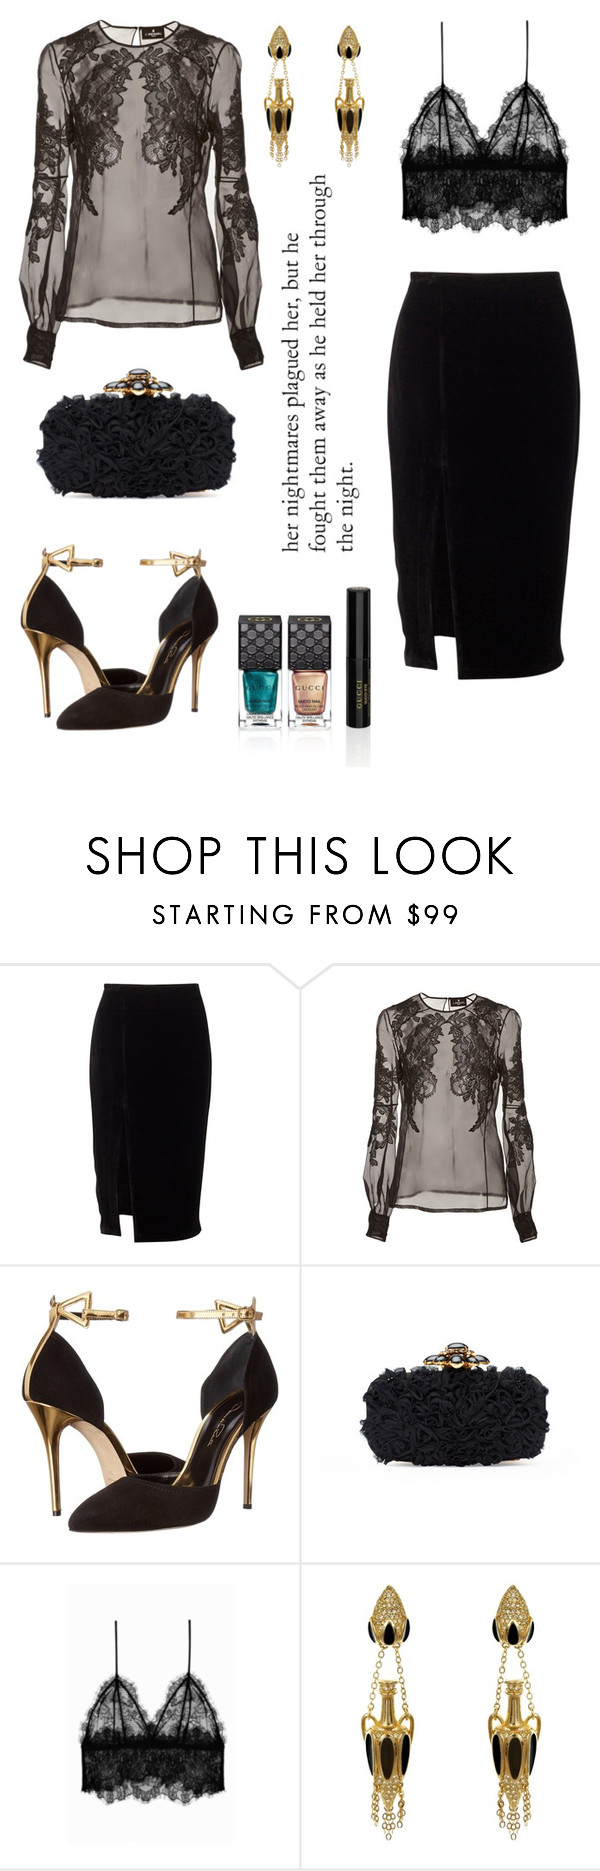 """""""He."""" by schenonek ❤ liked on Polyvore featuring J. Mendel, Oscar de la Renta, Anine Bing and Gucci"""